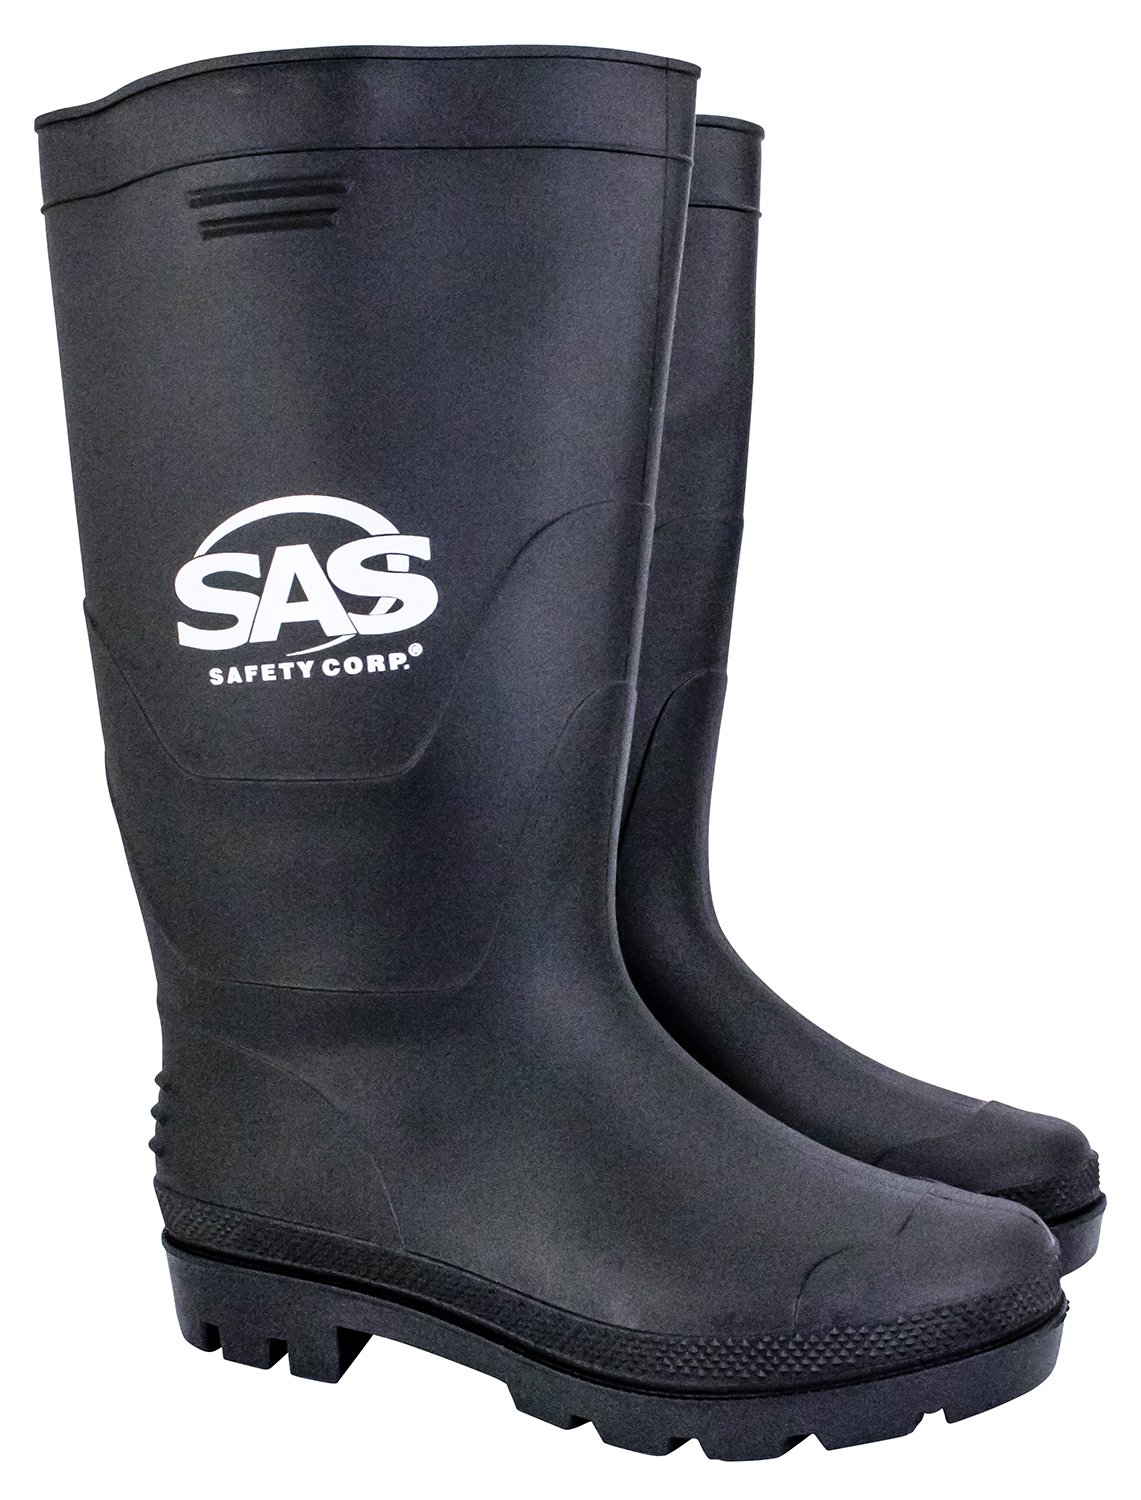 SAS Safety 7130-07 Rubber Work Boots with Non-steel Toe, 16